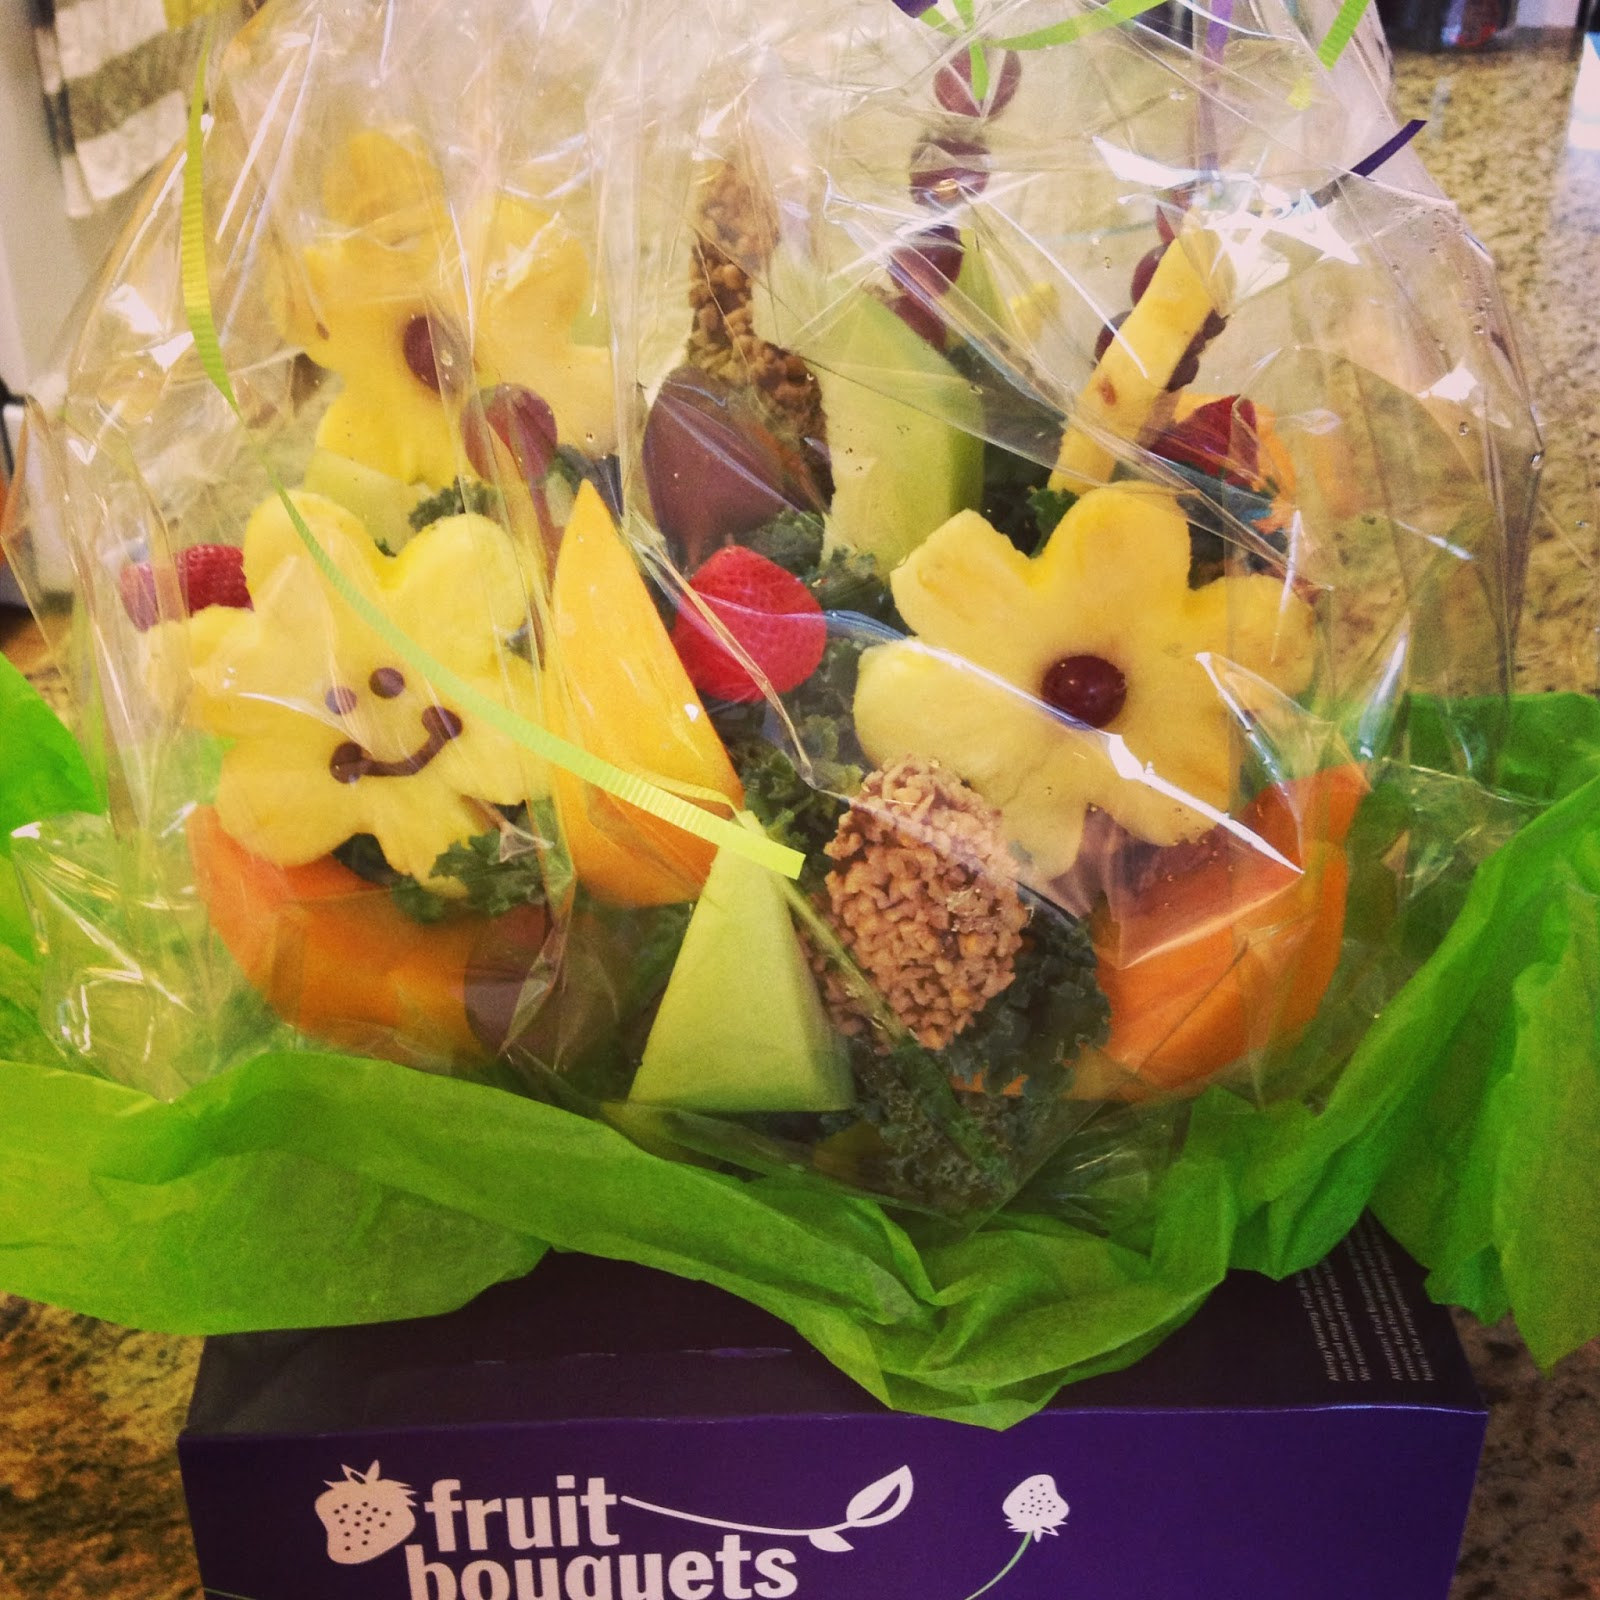 Why have fruit when you can have a fruit bouquet the Fruit bouquet